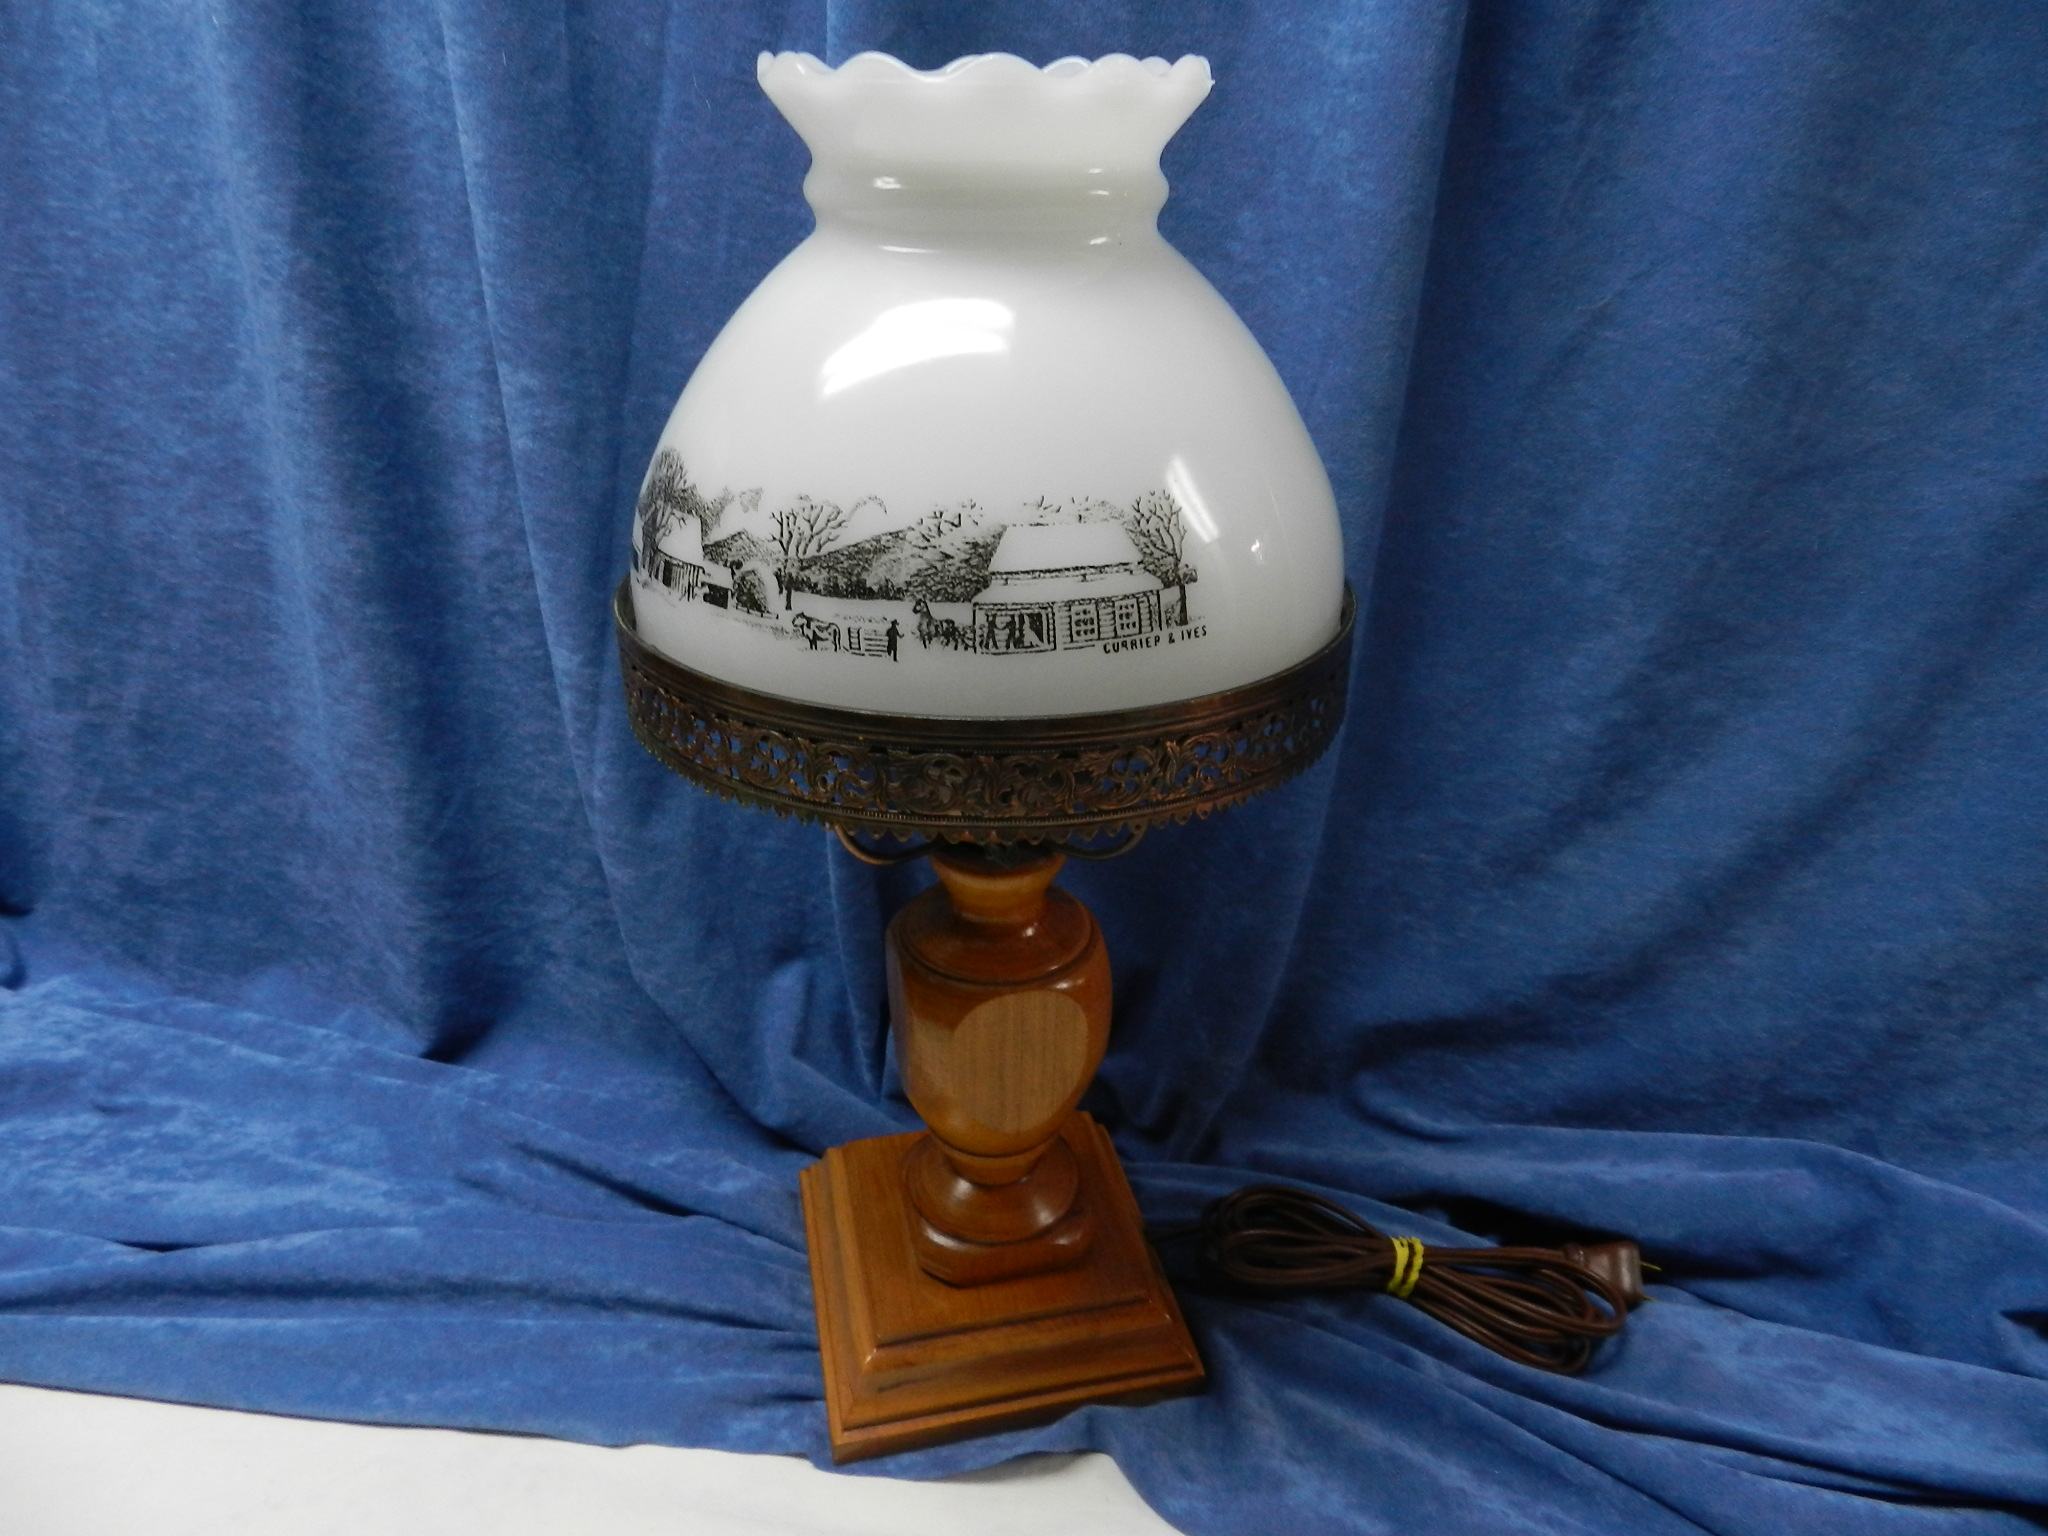 $19 - Currier and Ives Classic Desk Lamp